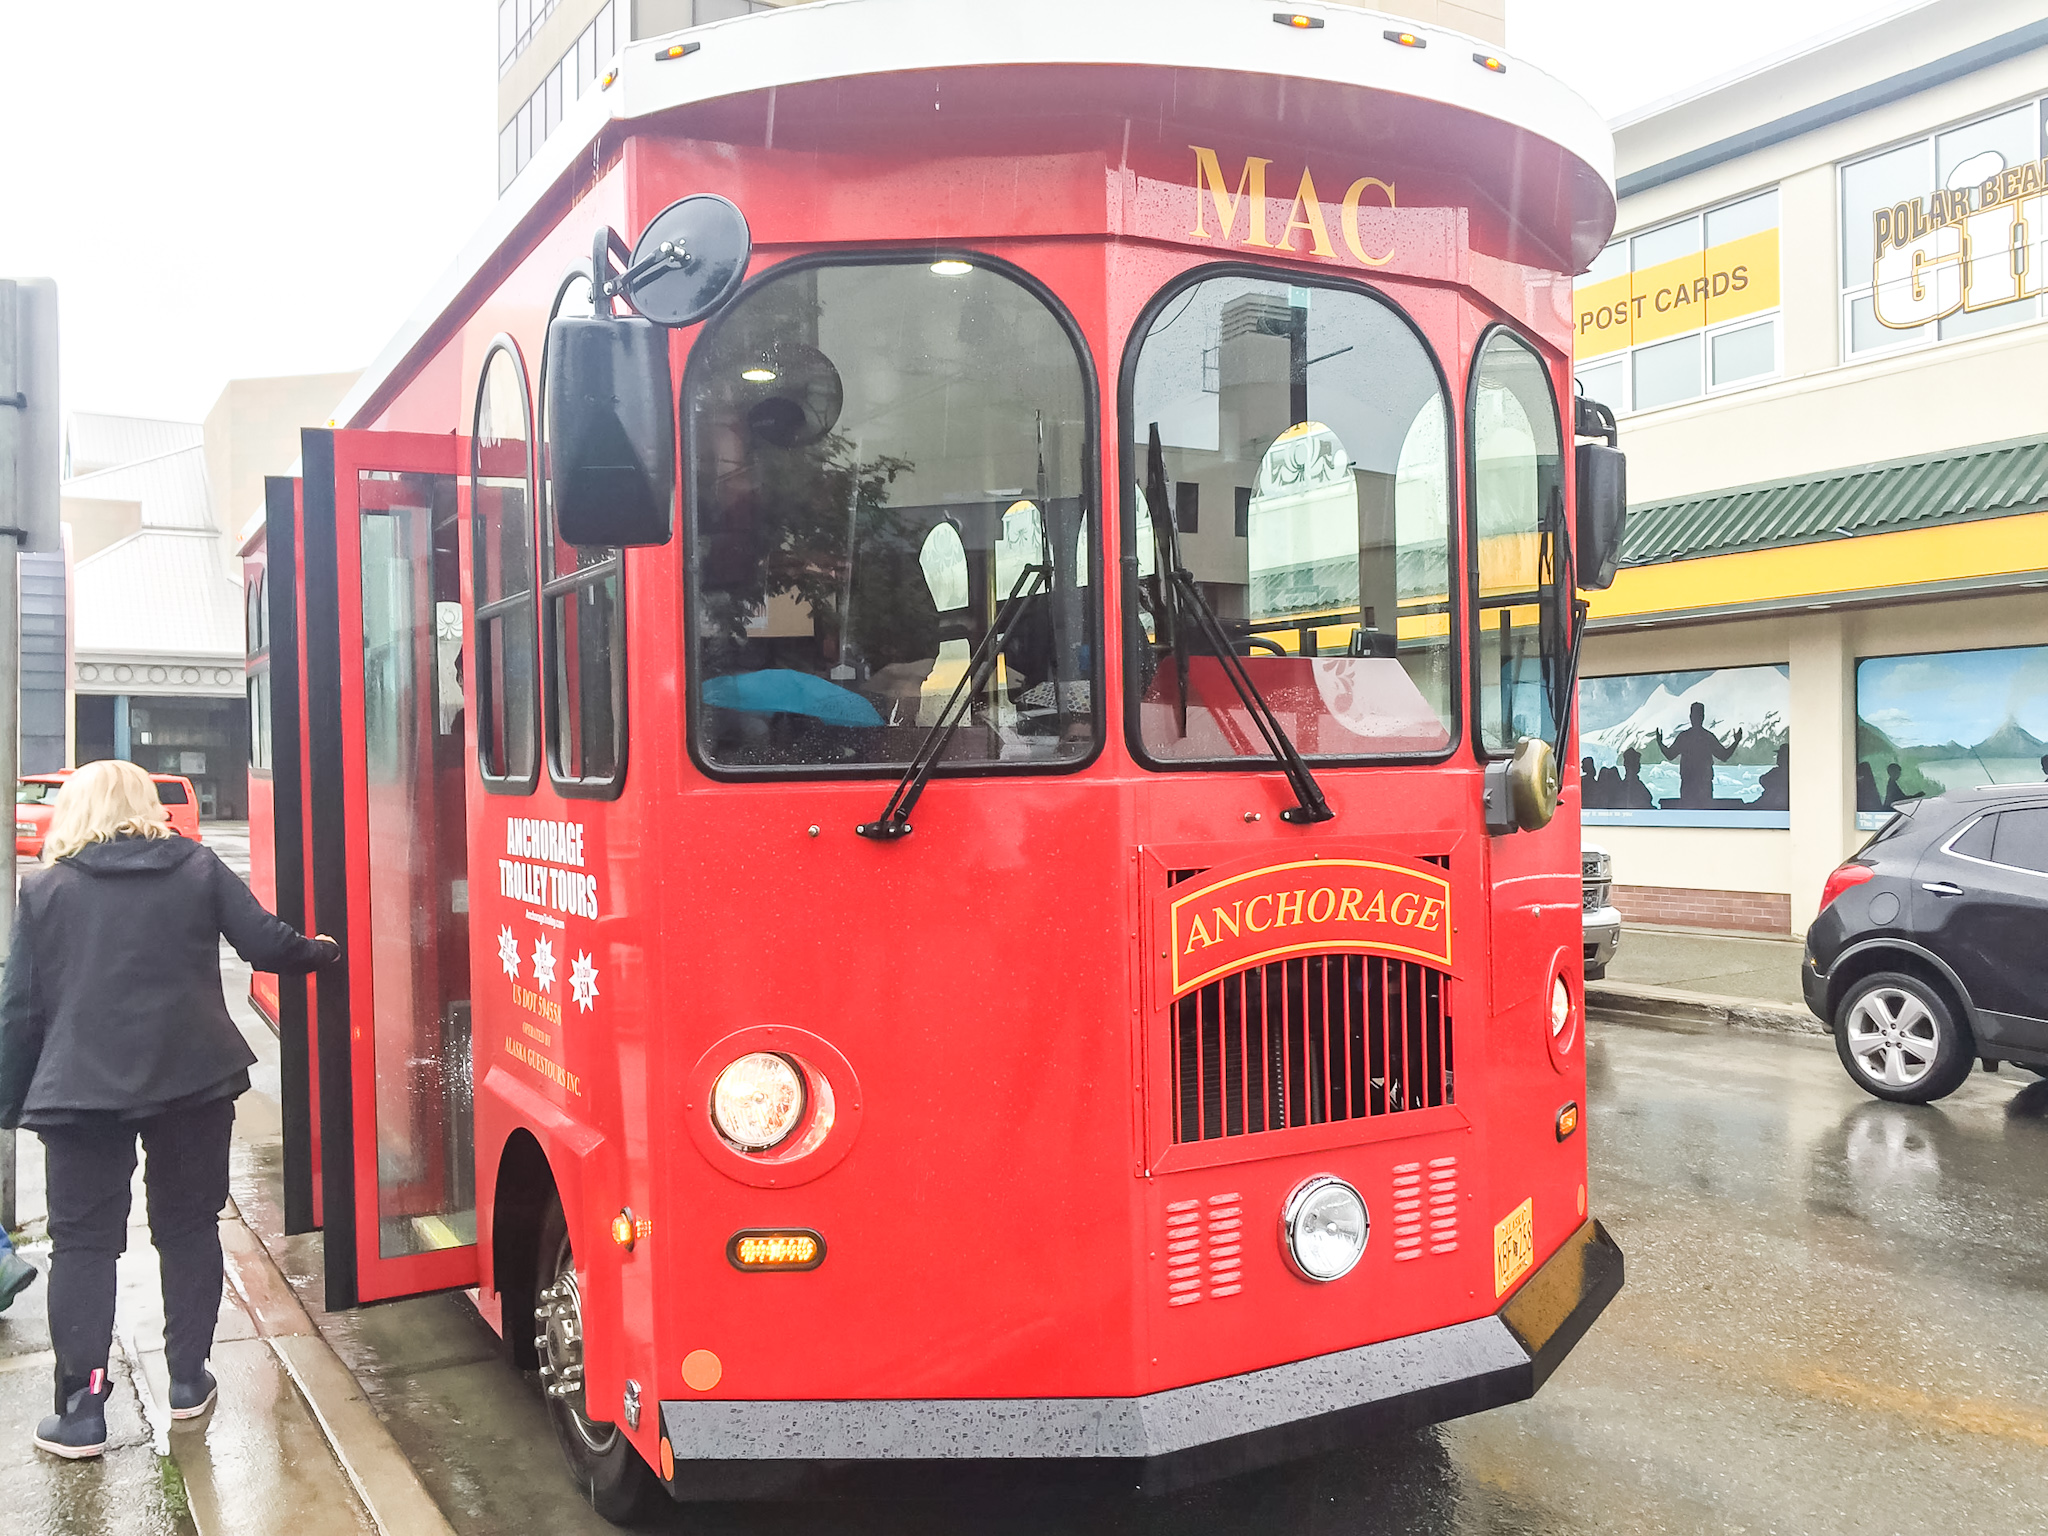 Unique Things To Do in Anchorage, Alaska - The Trolley